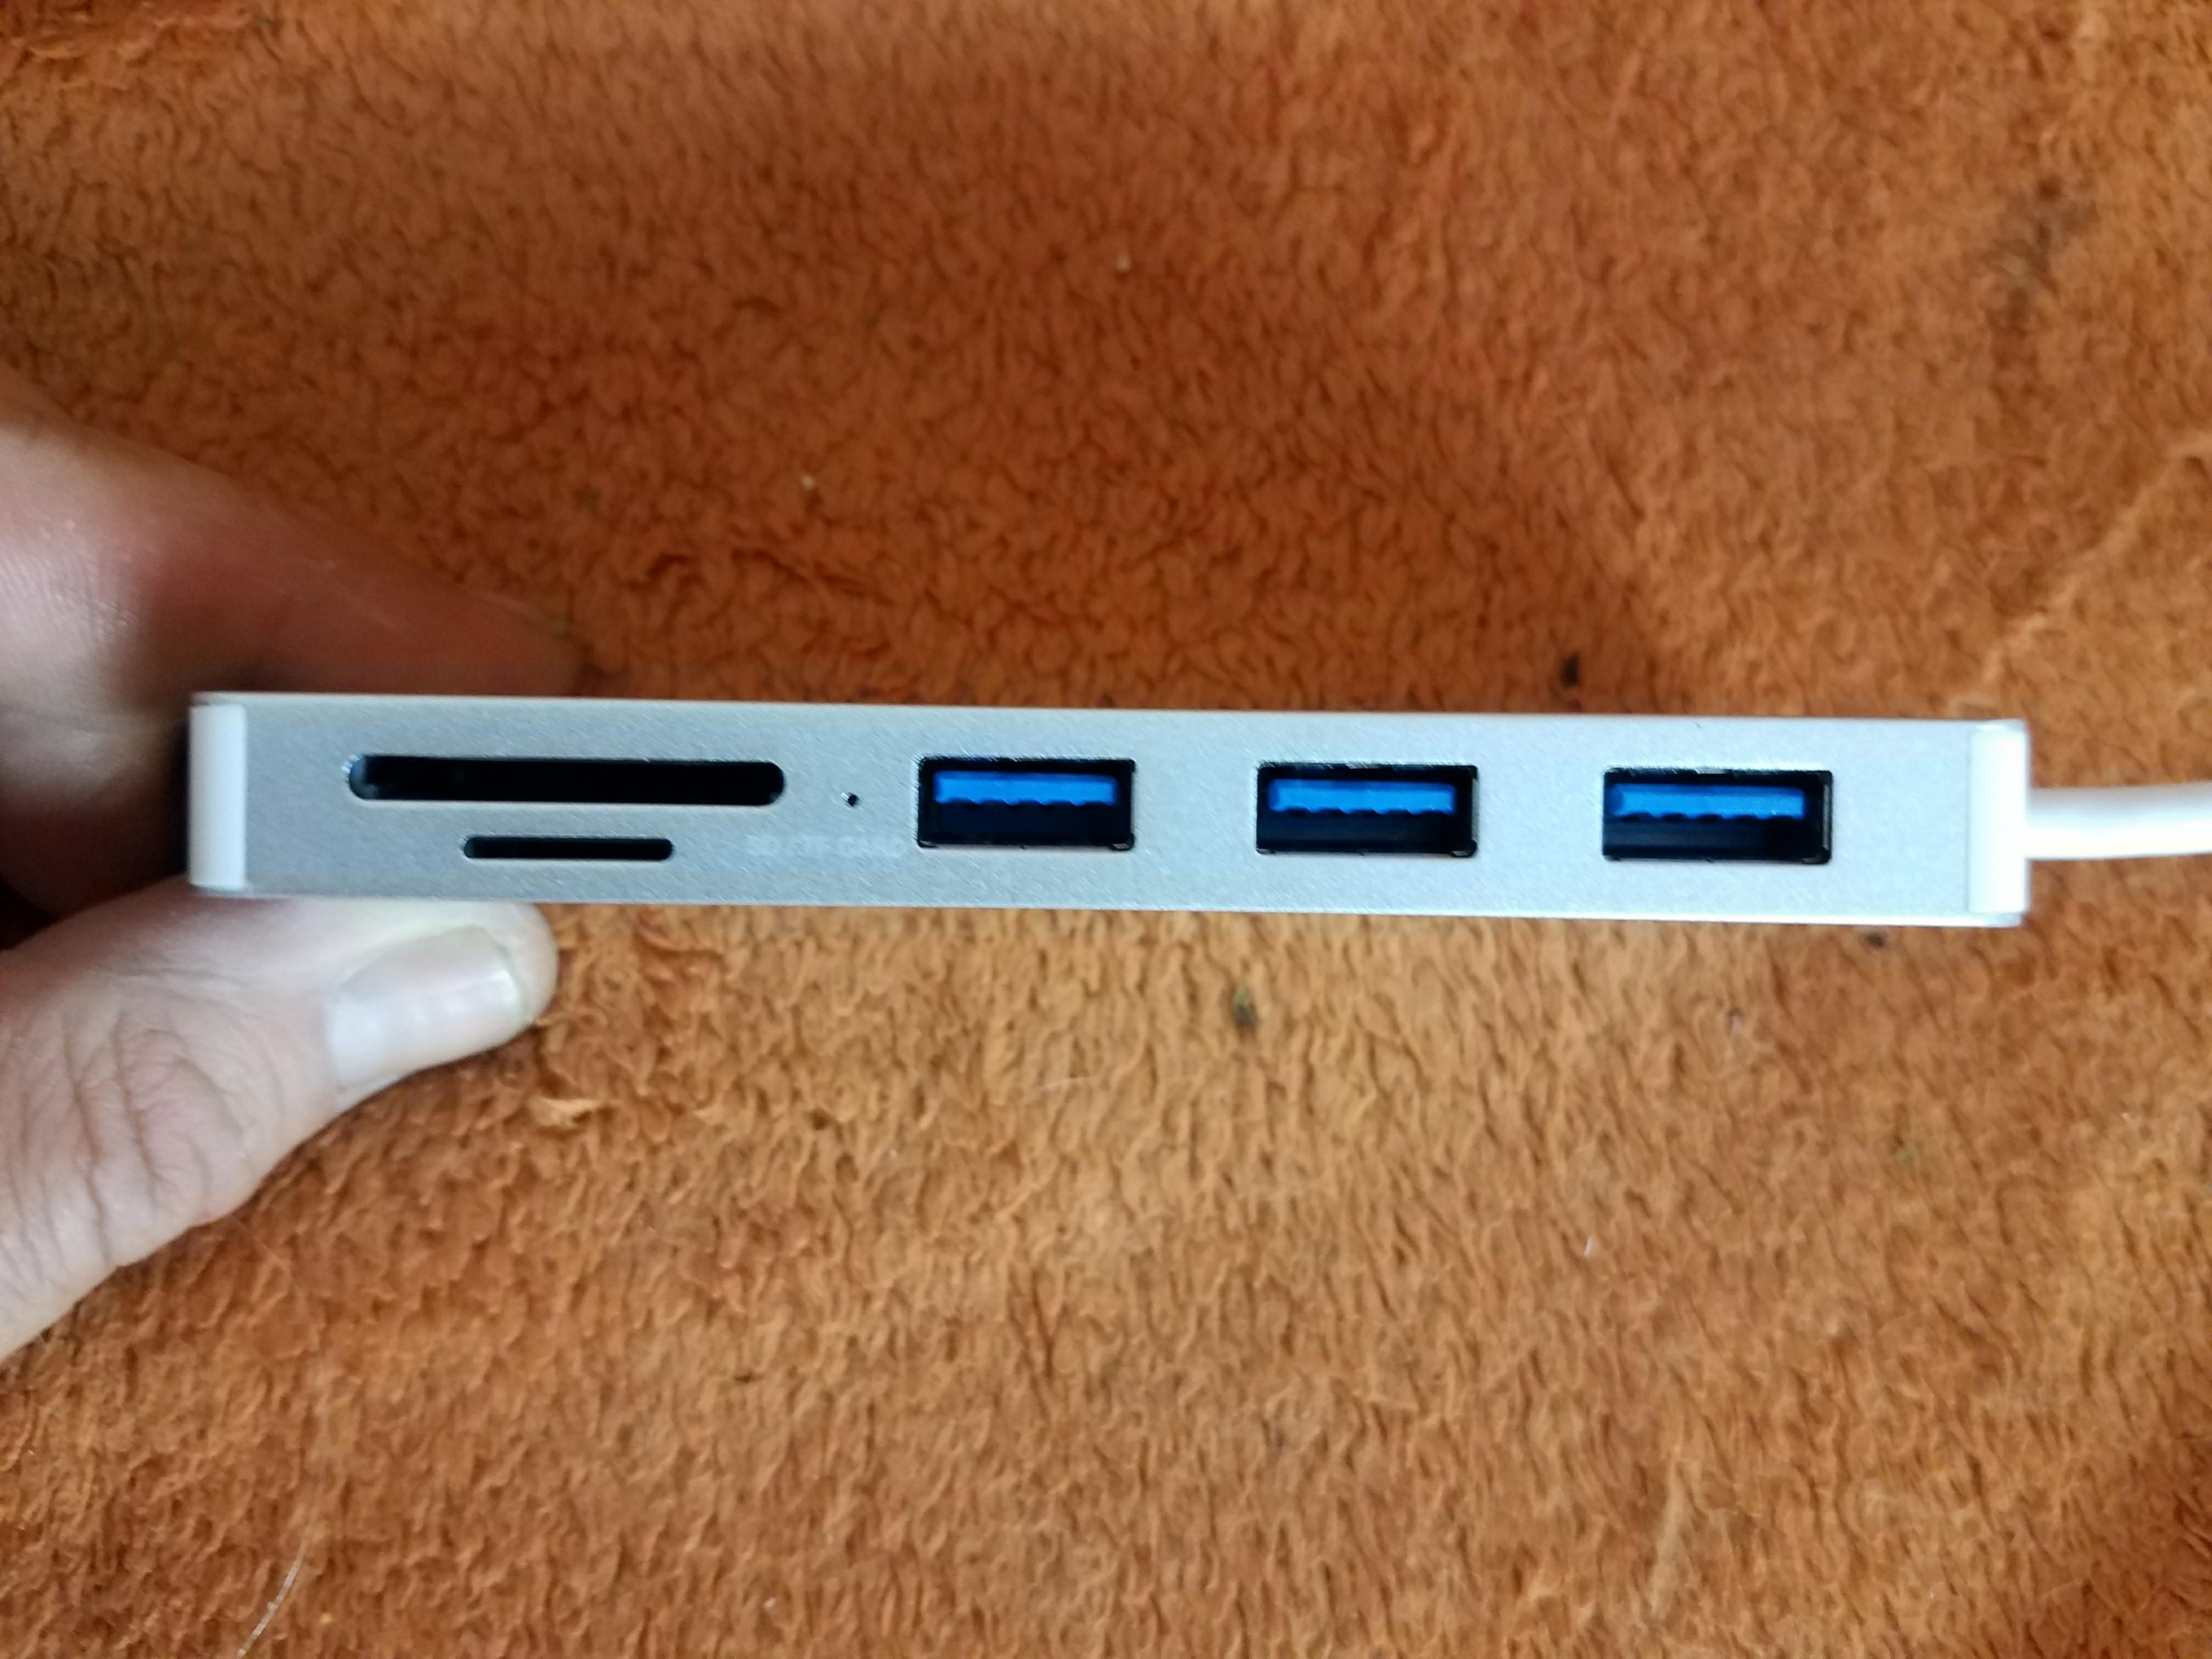 A simple, silver solution to not having enough USB ports available at once, magically turns 1 port into 3 ports!  Includes SD Card Reader, no downloads required, plug & play!